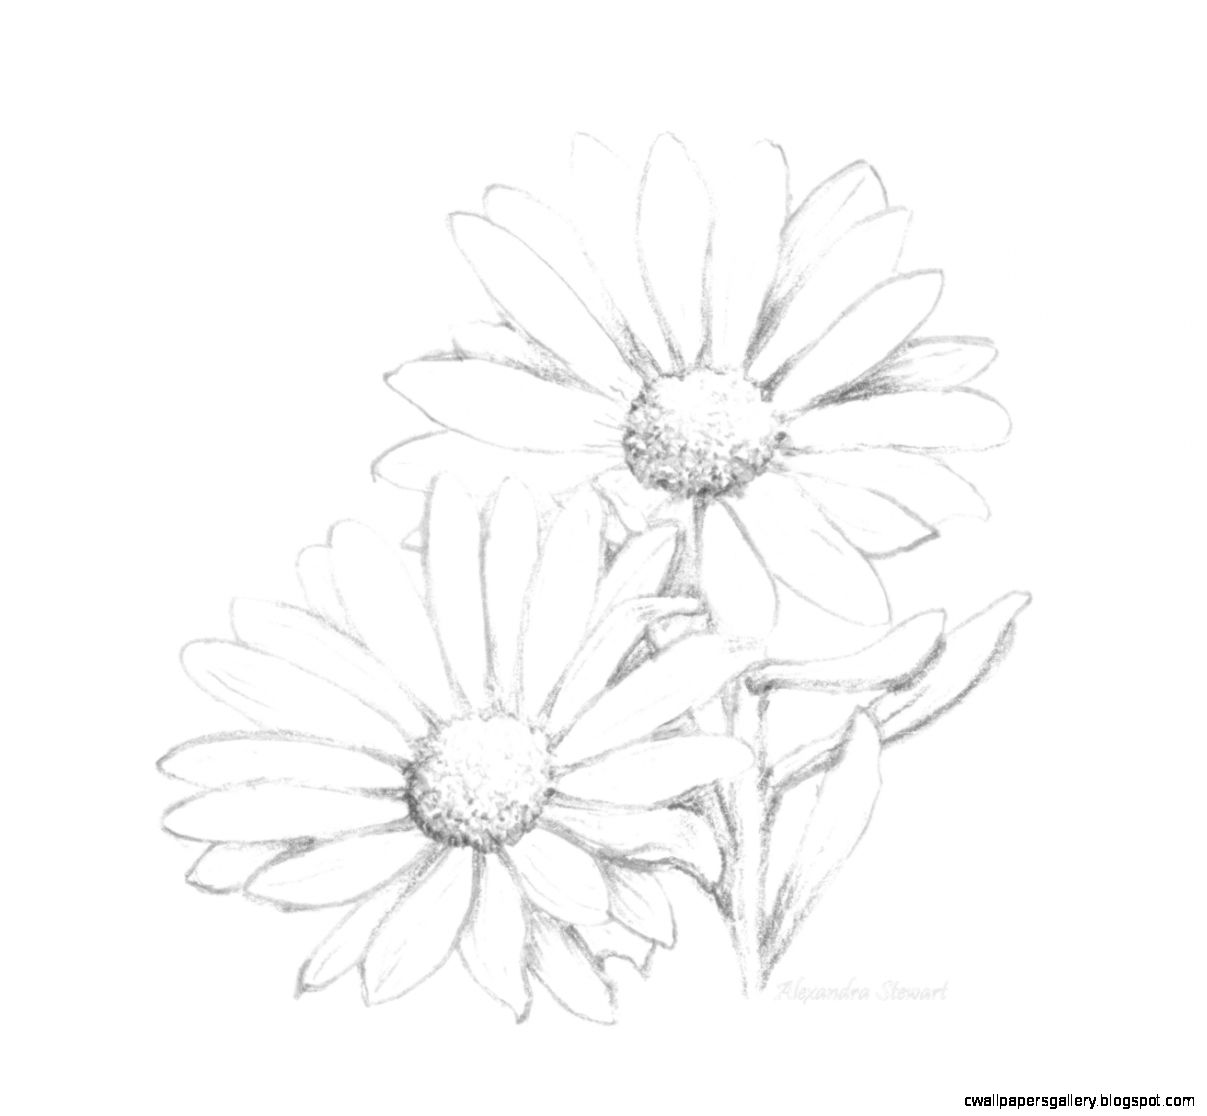 Daisy drawing images at getdrawings free for personal use 1207x1116 daisy flower drawing tumblr wallpapers gallery izmirmasajfo